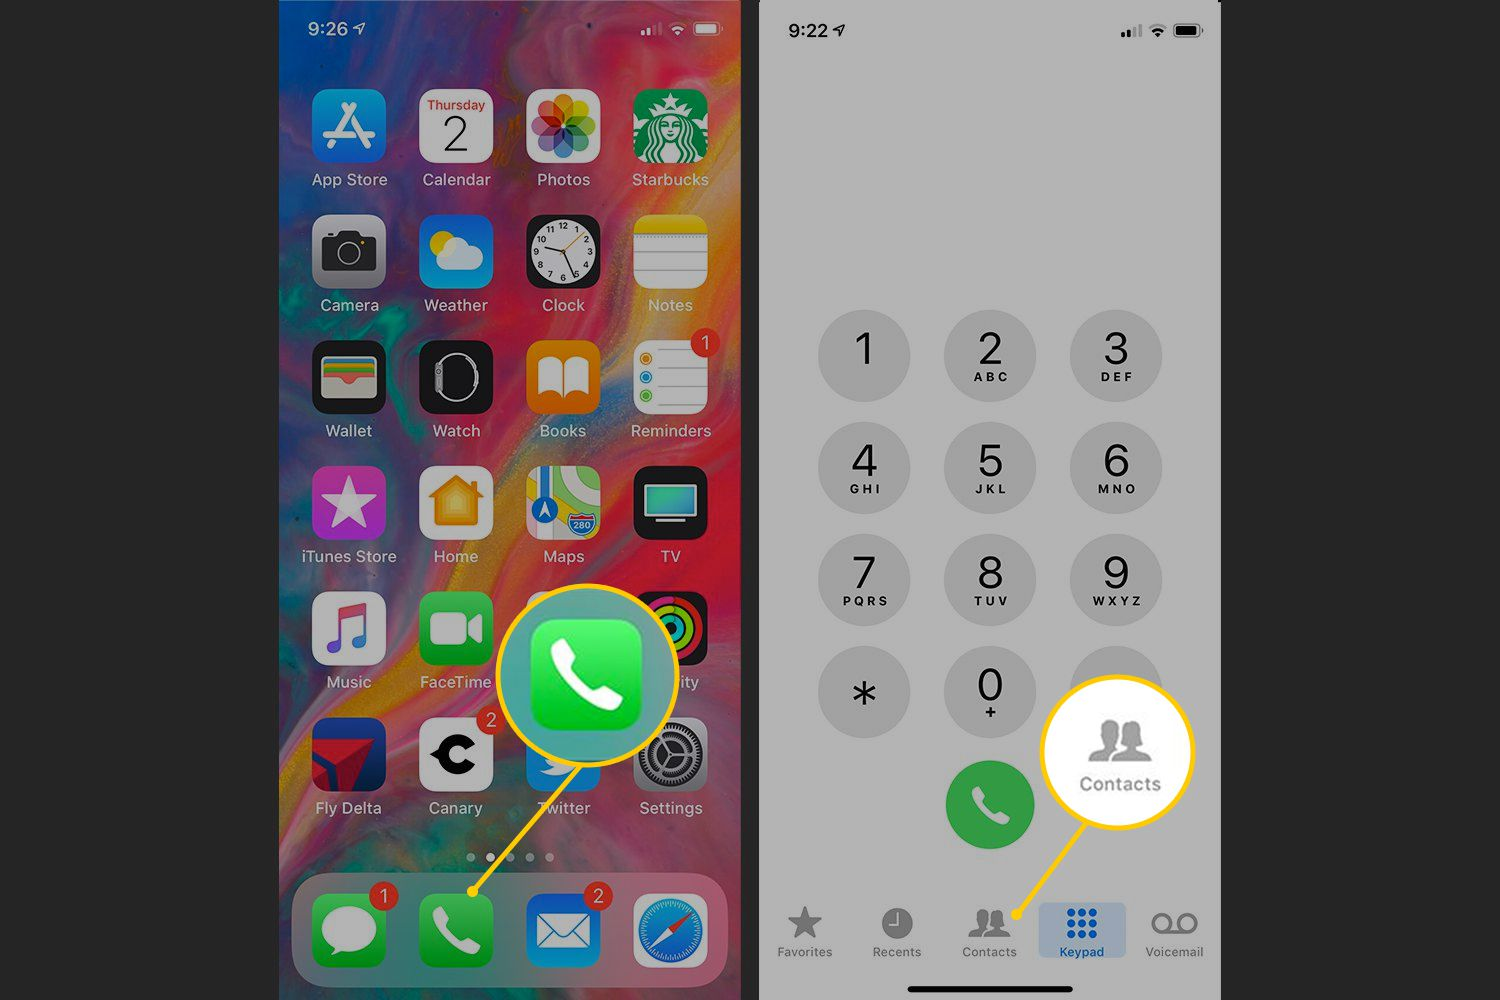 Phone icon, Contacts button on iOS